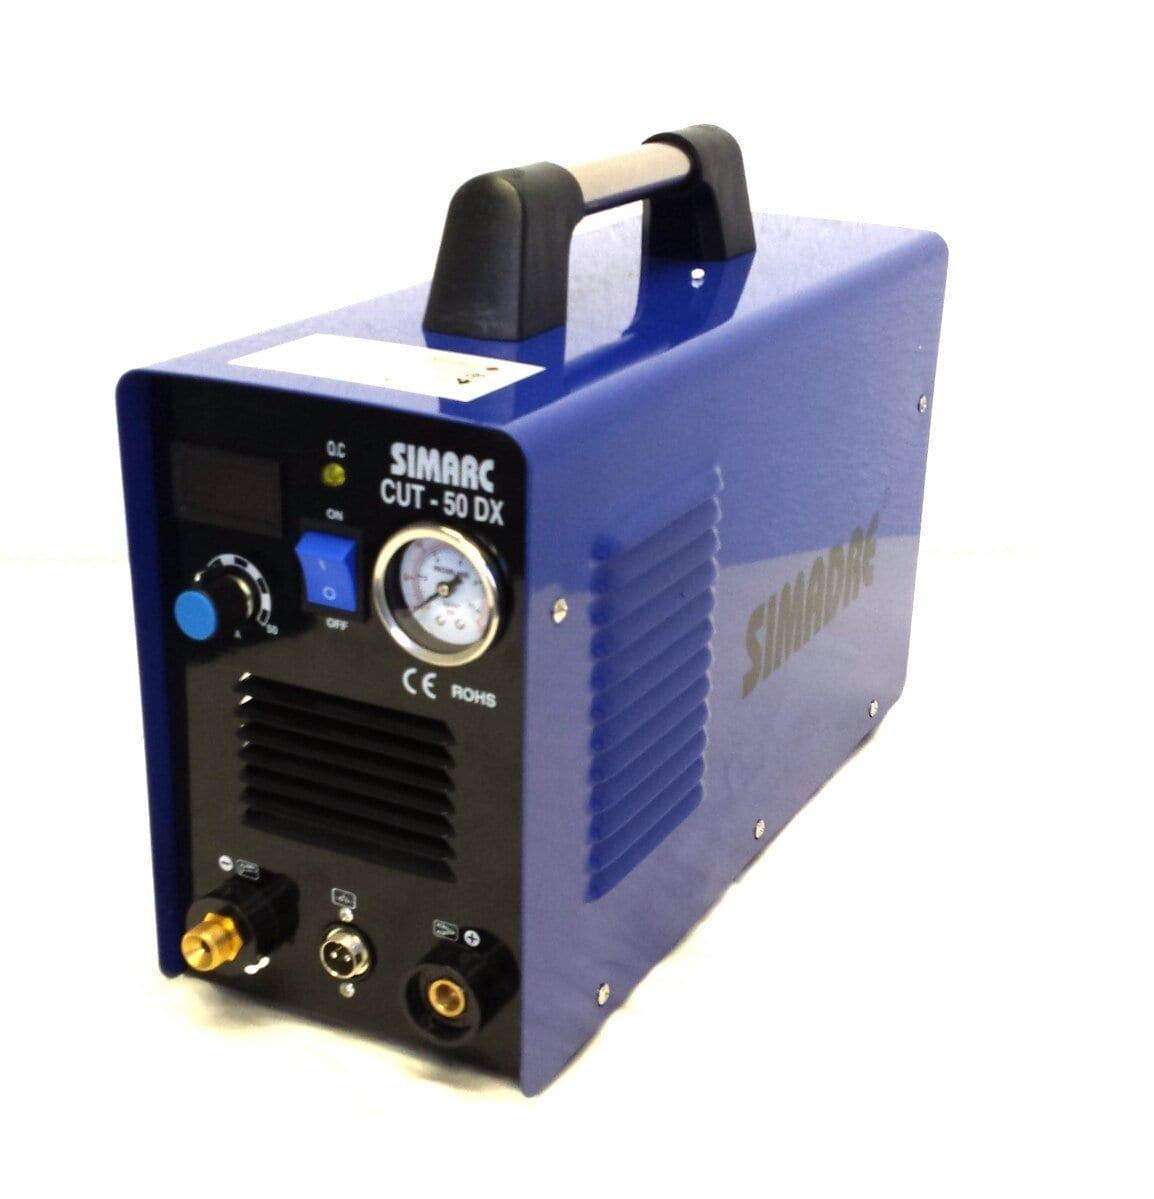 Simadre 50dx 110-220v 50AMP DC Inverter Plasma Cutter Review